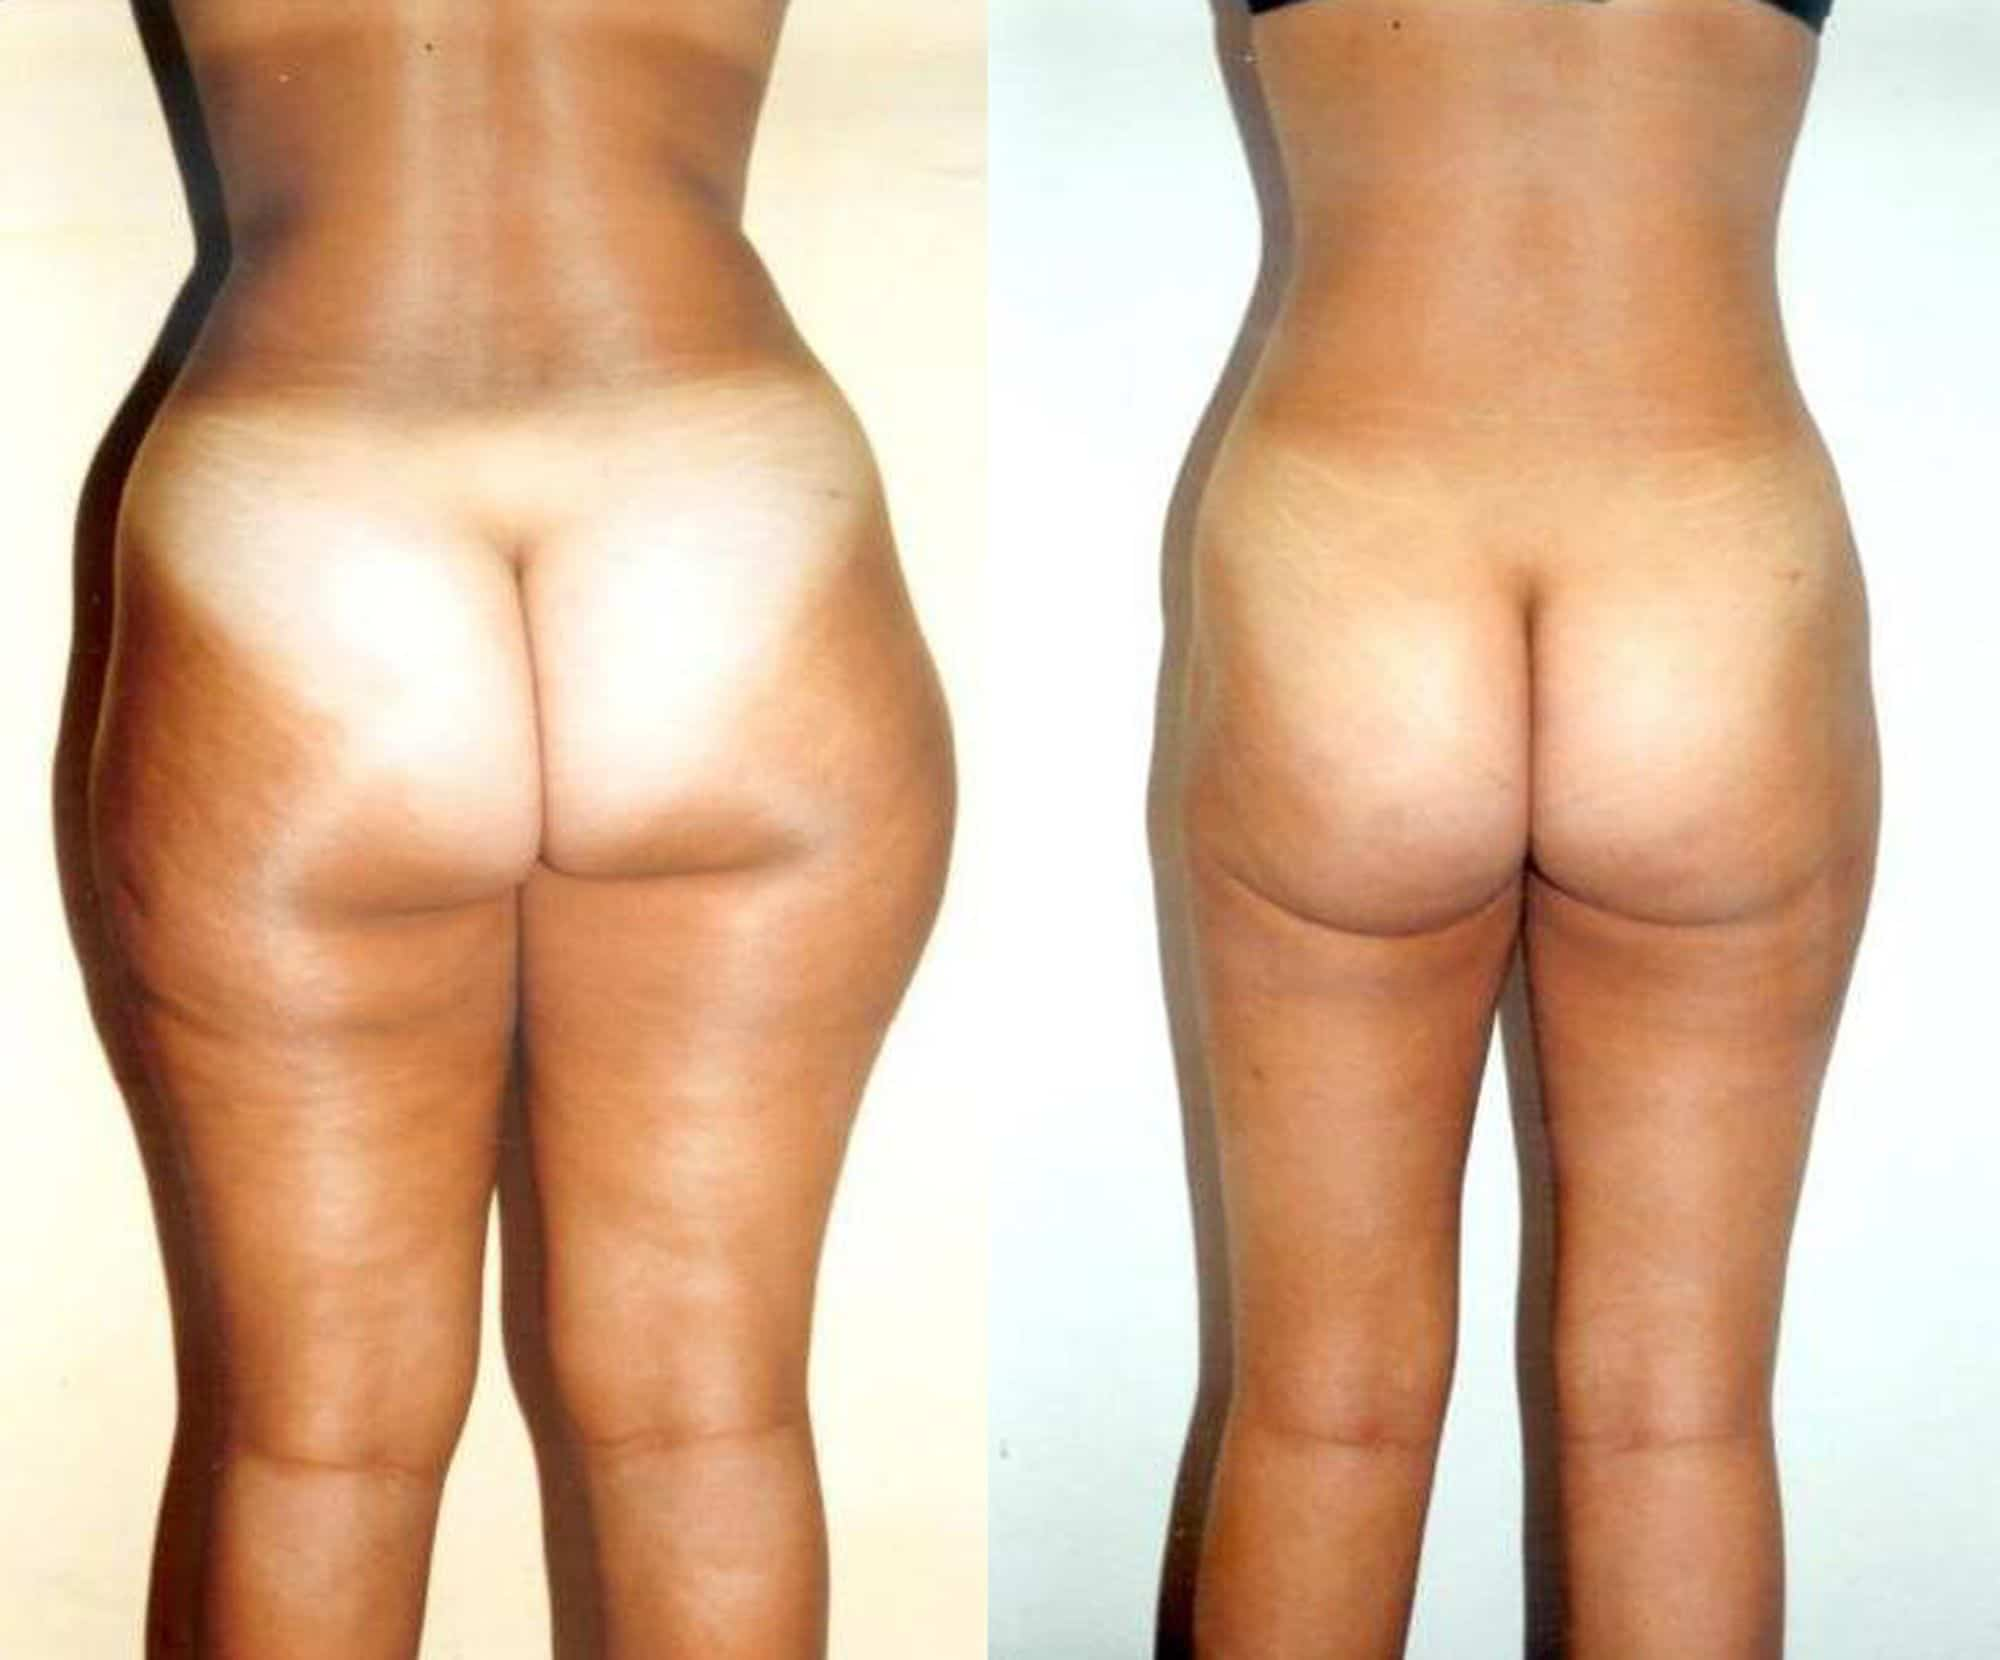 Leg liposuction - Picture 4